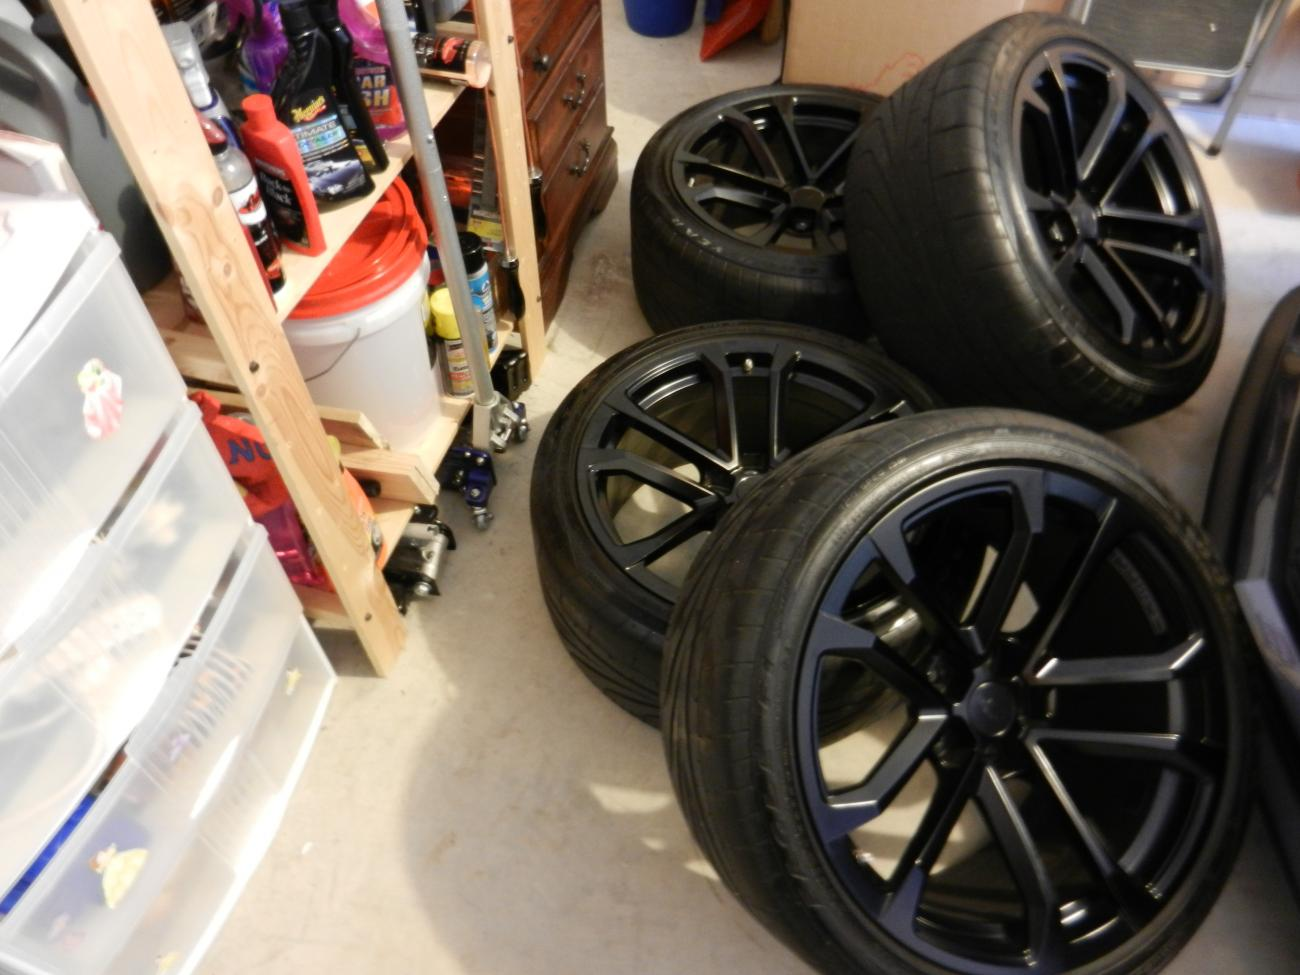 Zl1 10 Spoke Oem Wheels And Tires For Sale Camaro5 Chevy